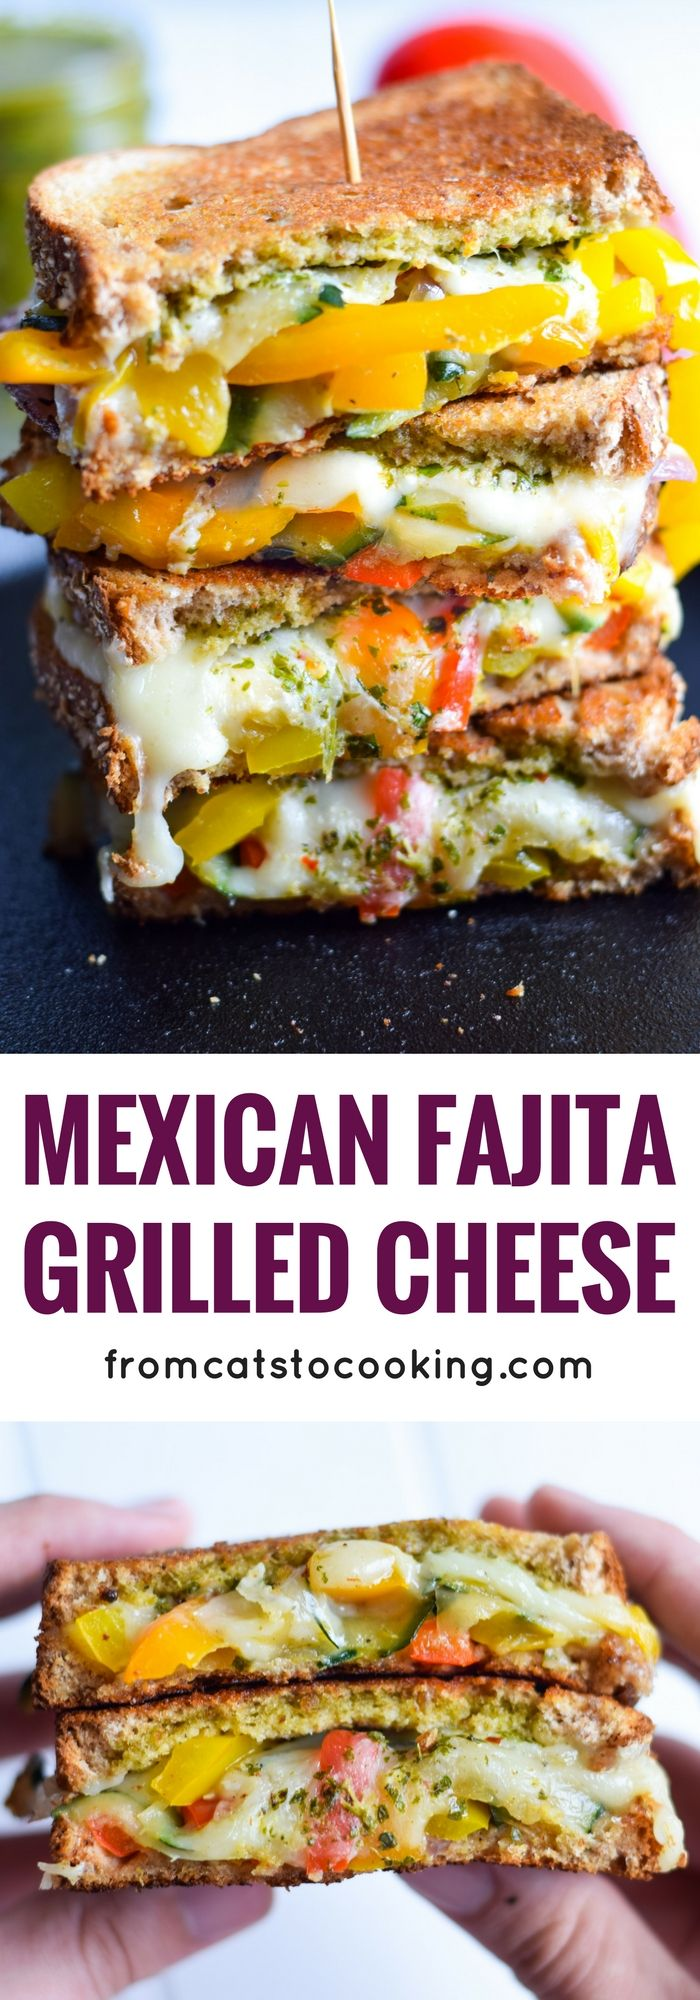 ... cheese, this Mexican Fajita Grilled Cheese will leave you full and oh